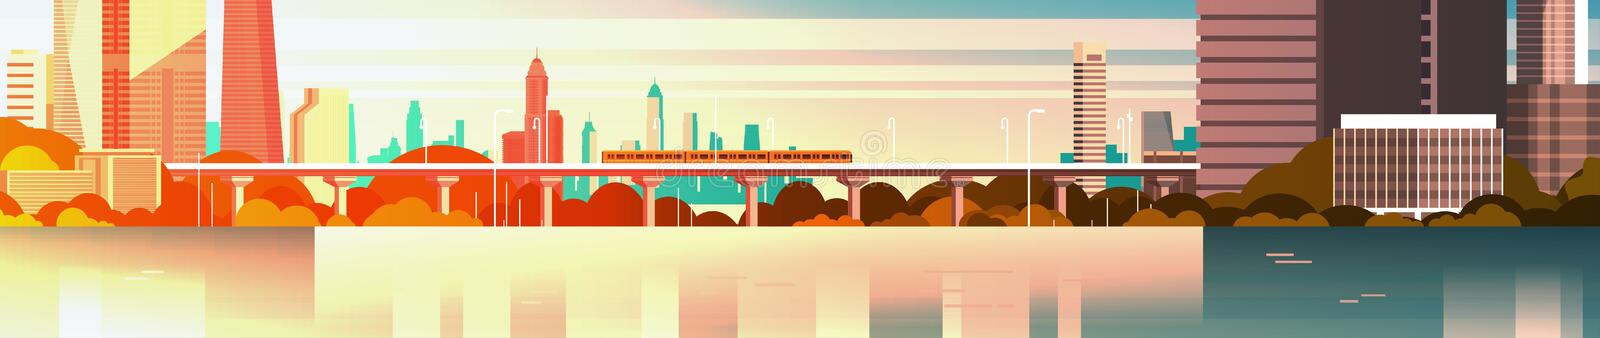 City On Sunset Urban Panorama With High Skyscrapers And Subway Cityscape Over River Background Horizontal Banner vector illustration